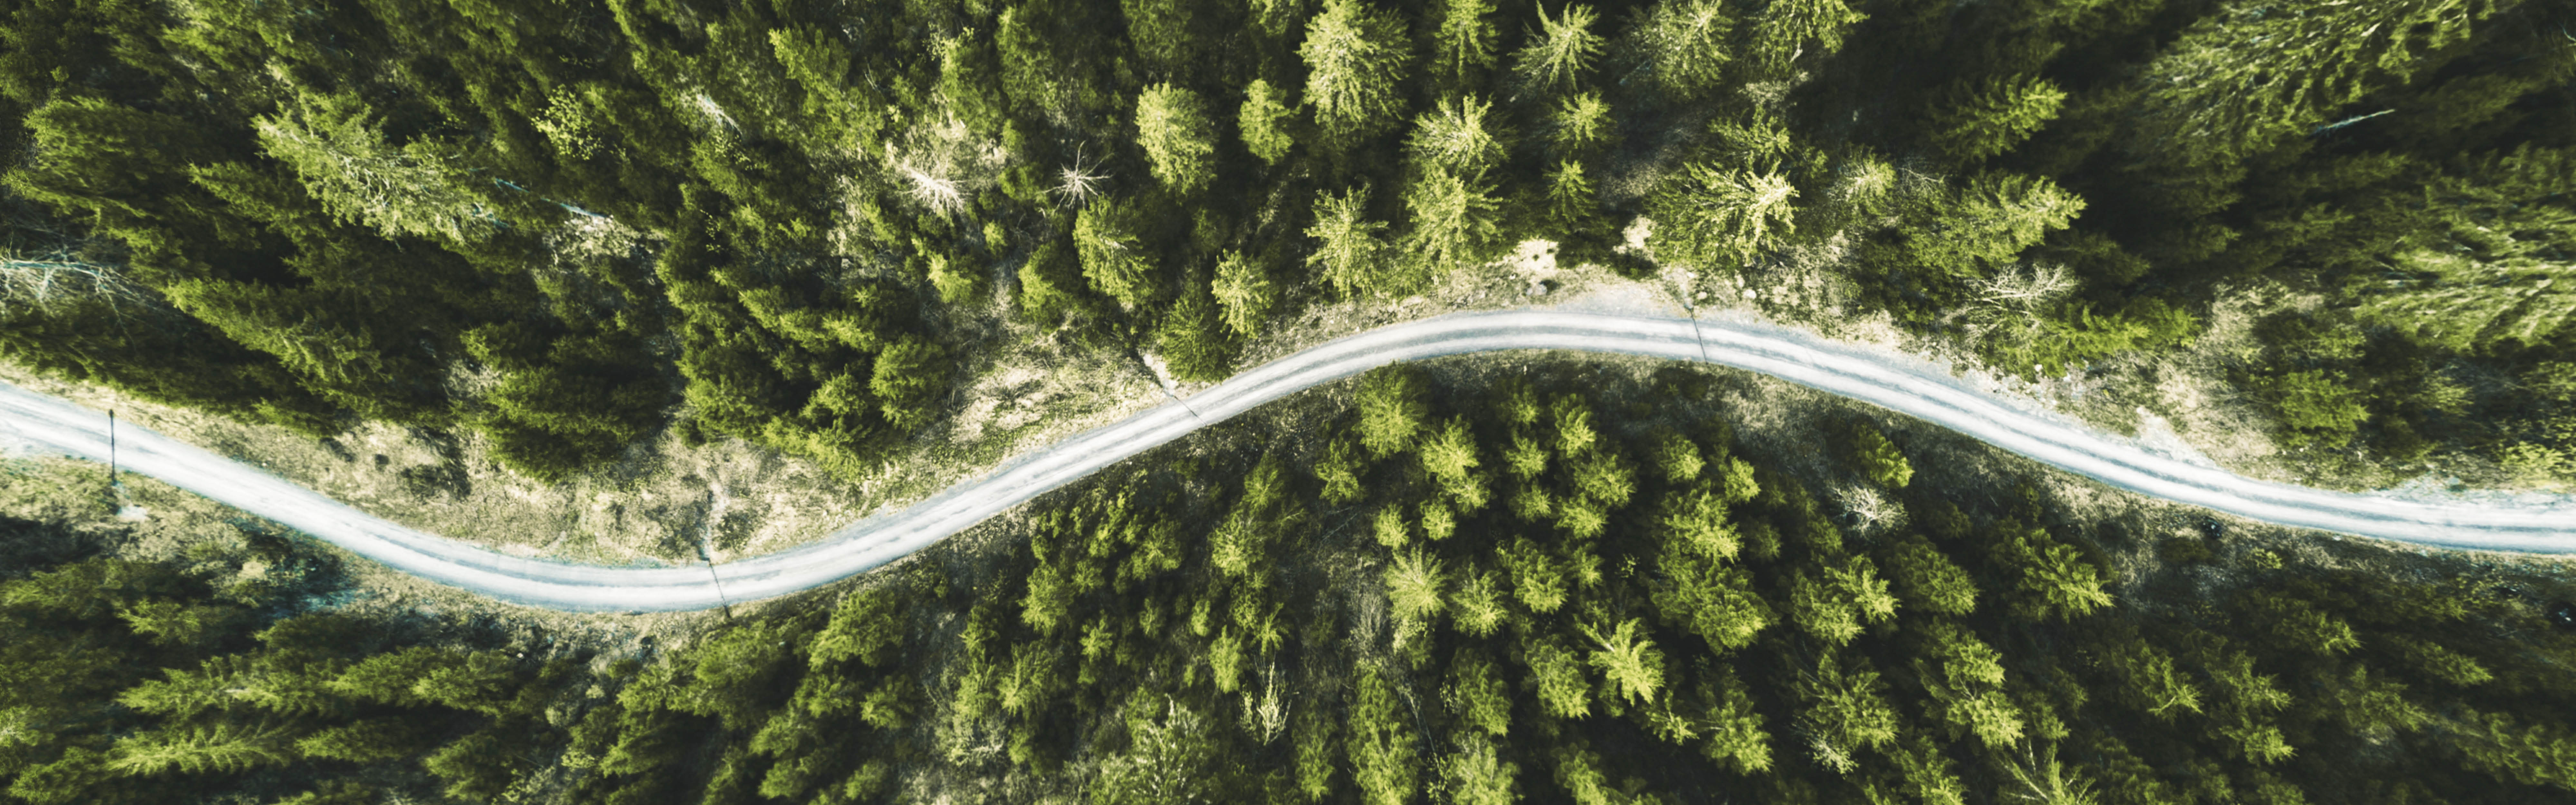 Aerial view of trees with a rural road winding through the tall pine trees.